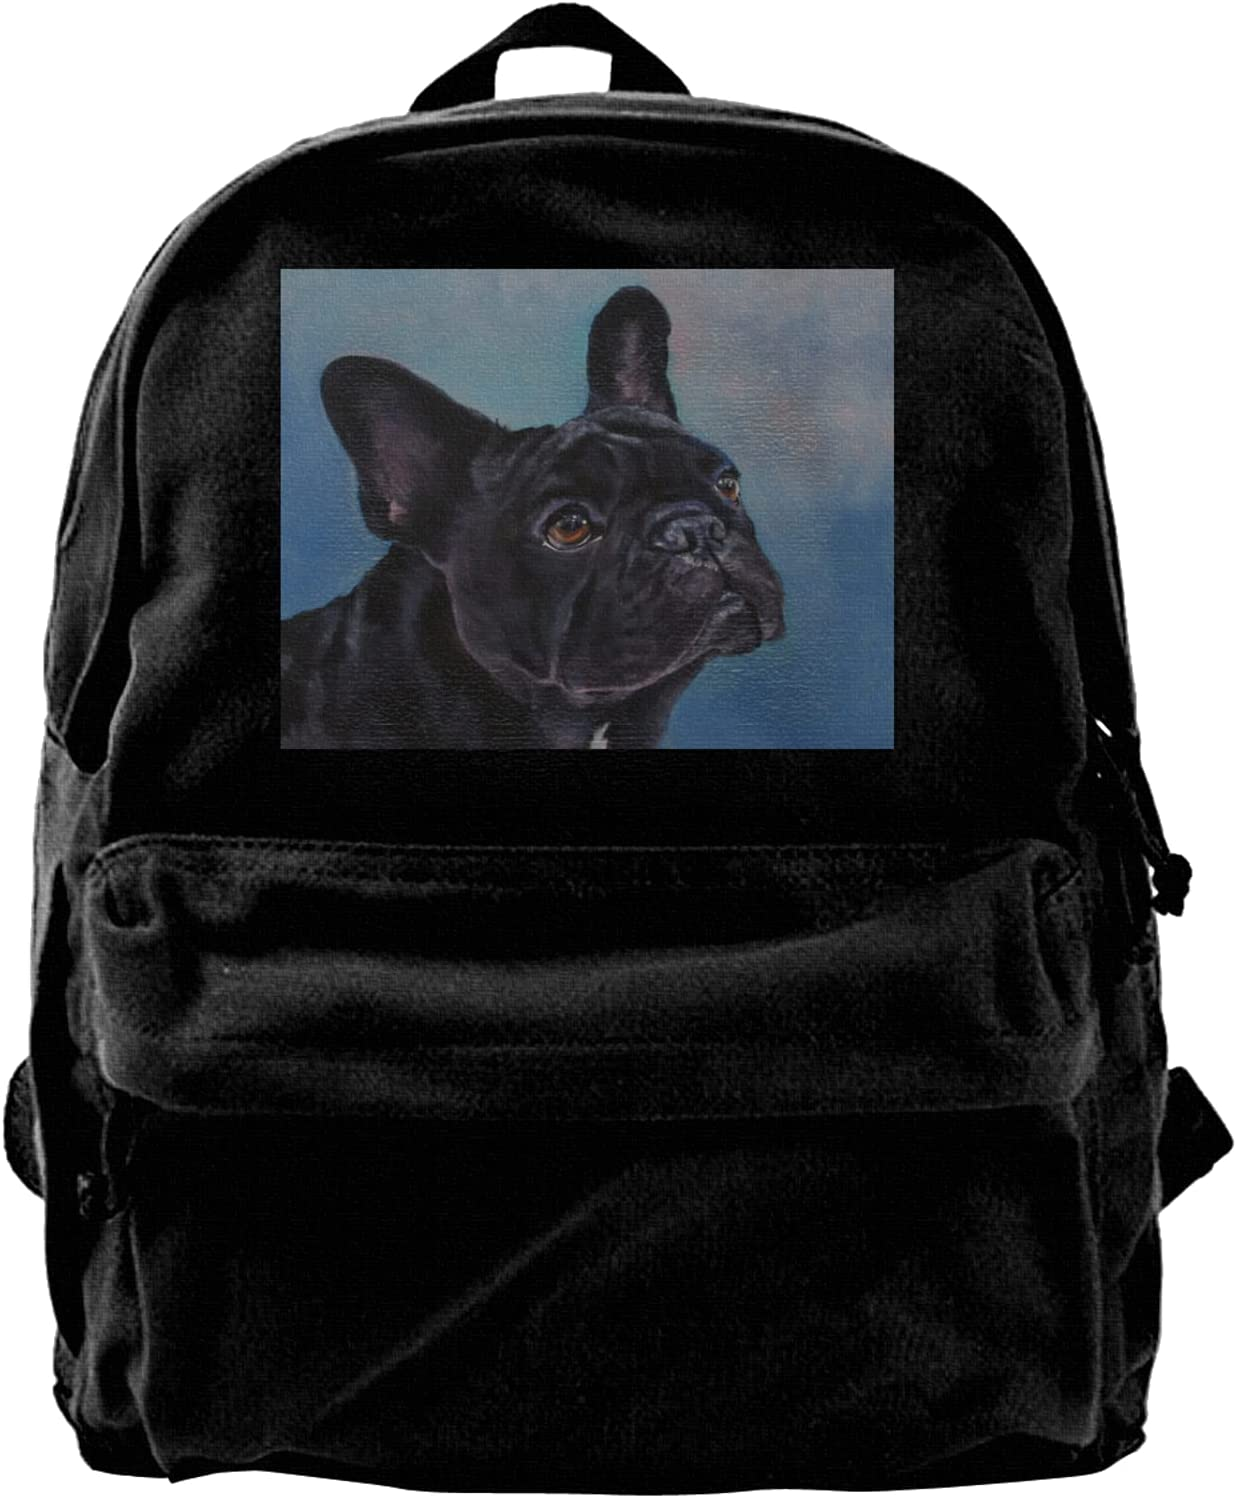 Bulldogge Dog Backpack For Outlet ☆ Free Shipping free Women Travel Laptop Men